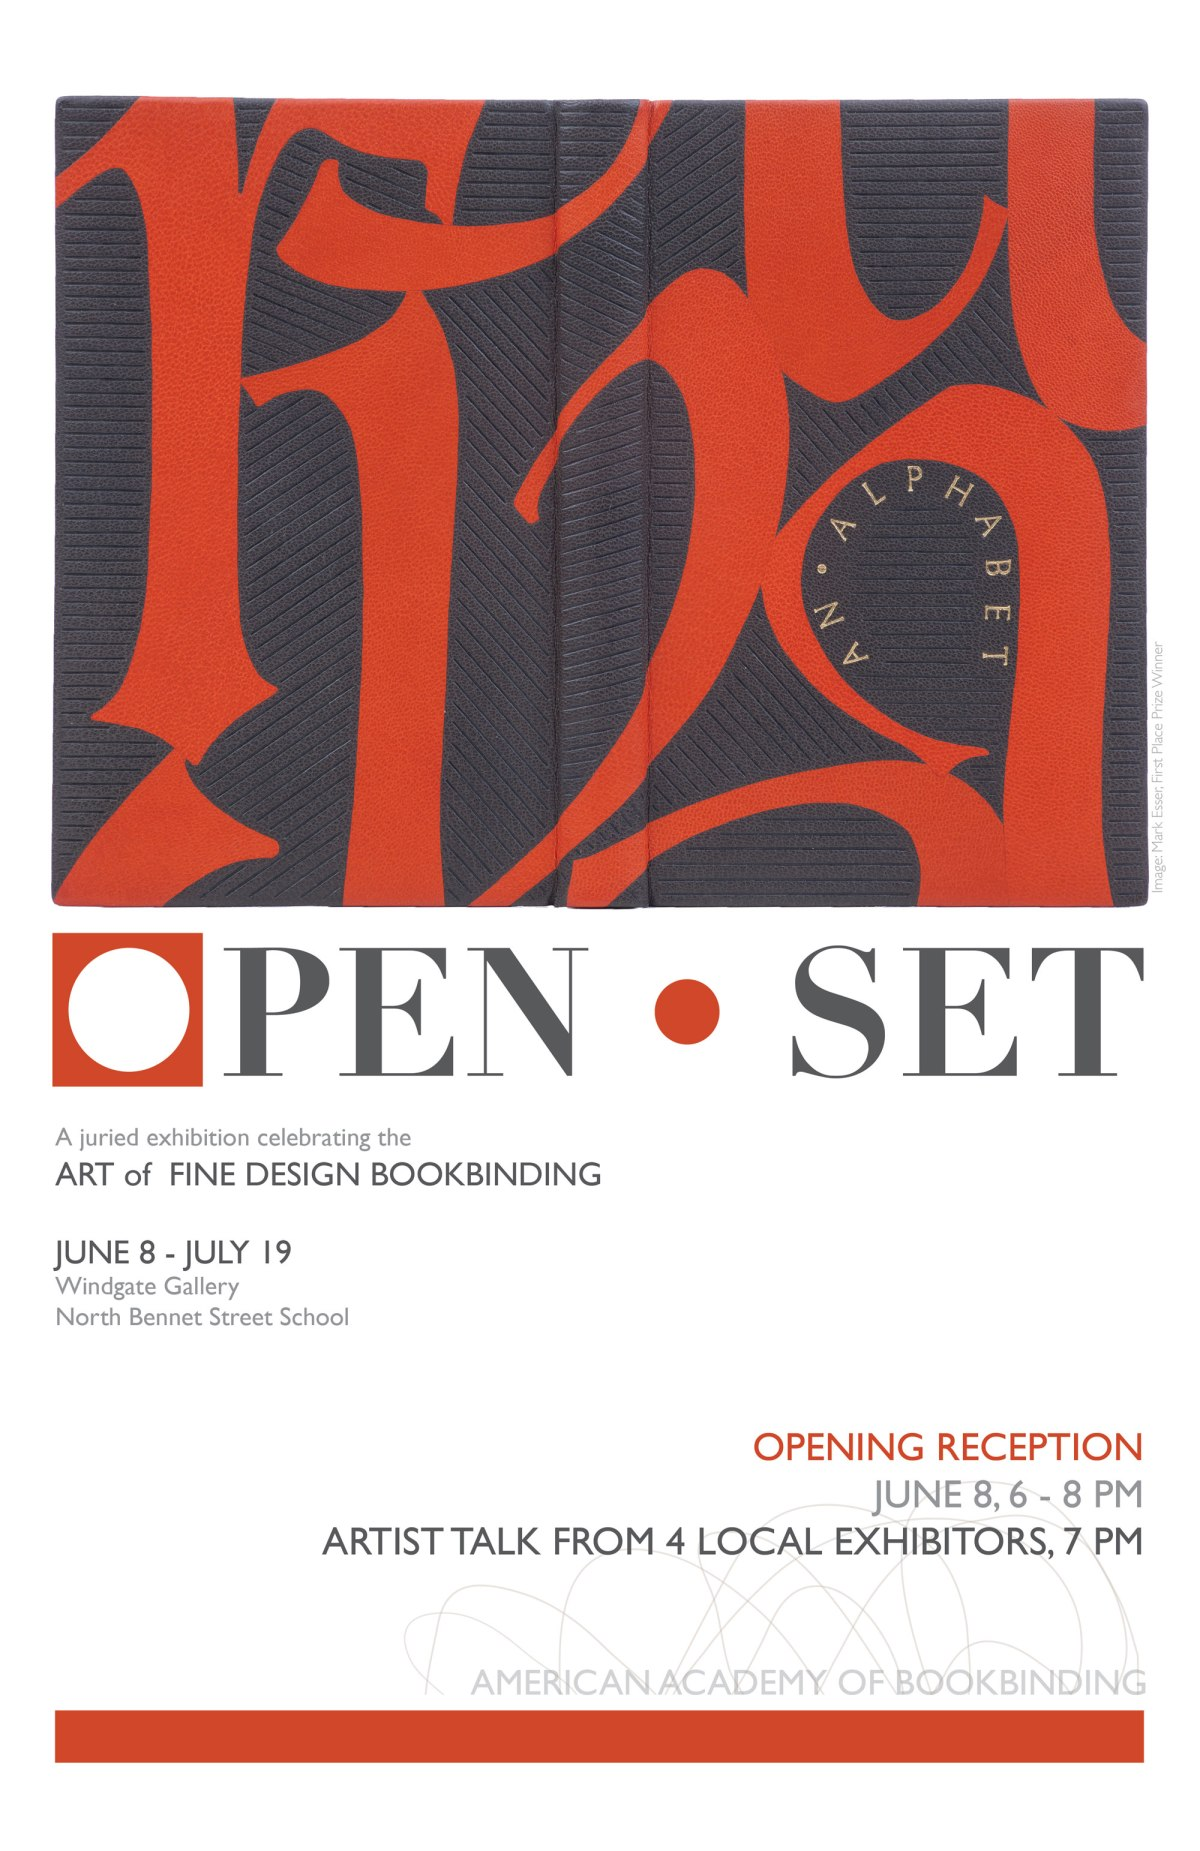 Opening Reception for the American Academy of Bookbinding Open/Set Exhibit – June 8th in Boston, MA